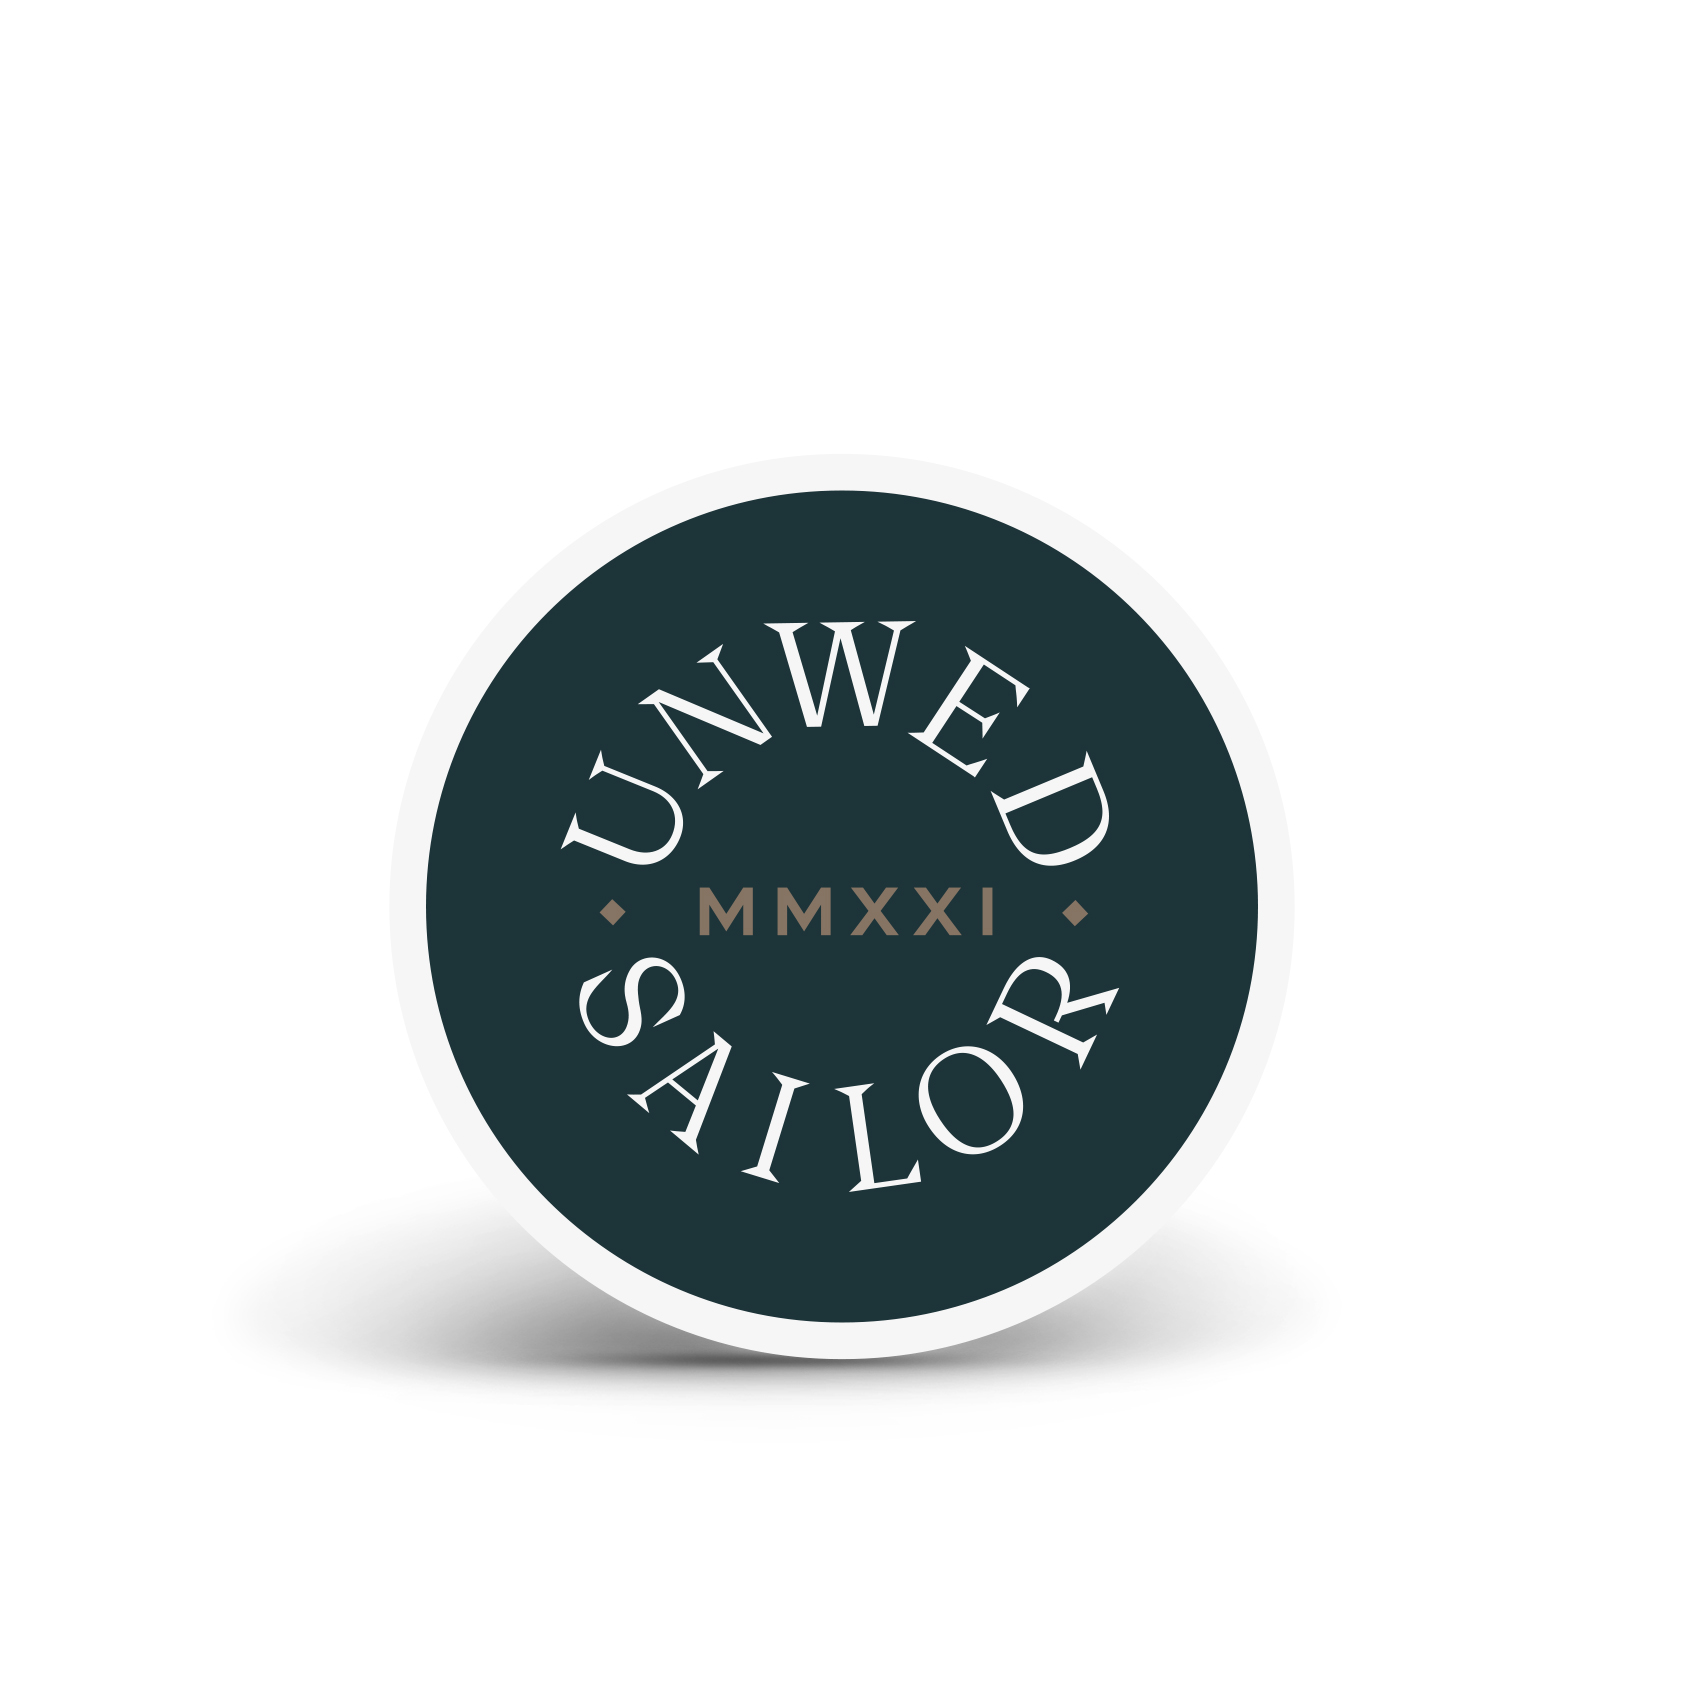 Unwed Sailor - MMXXI Slipmat